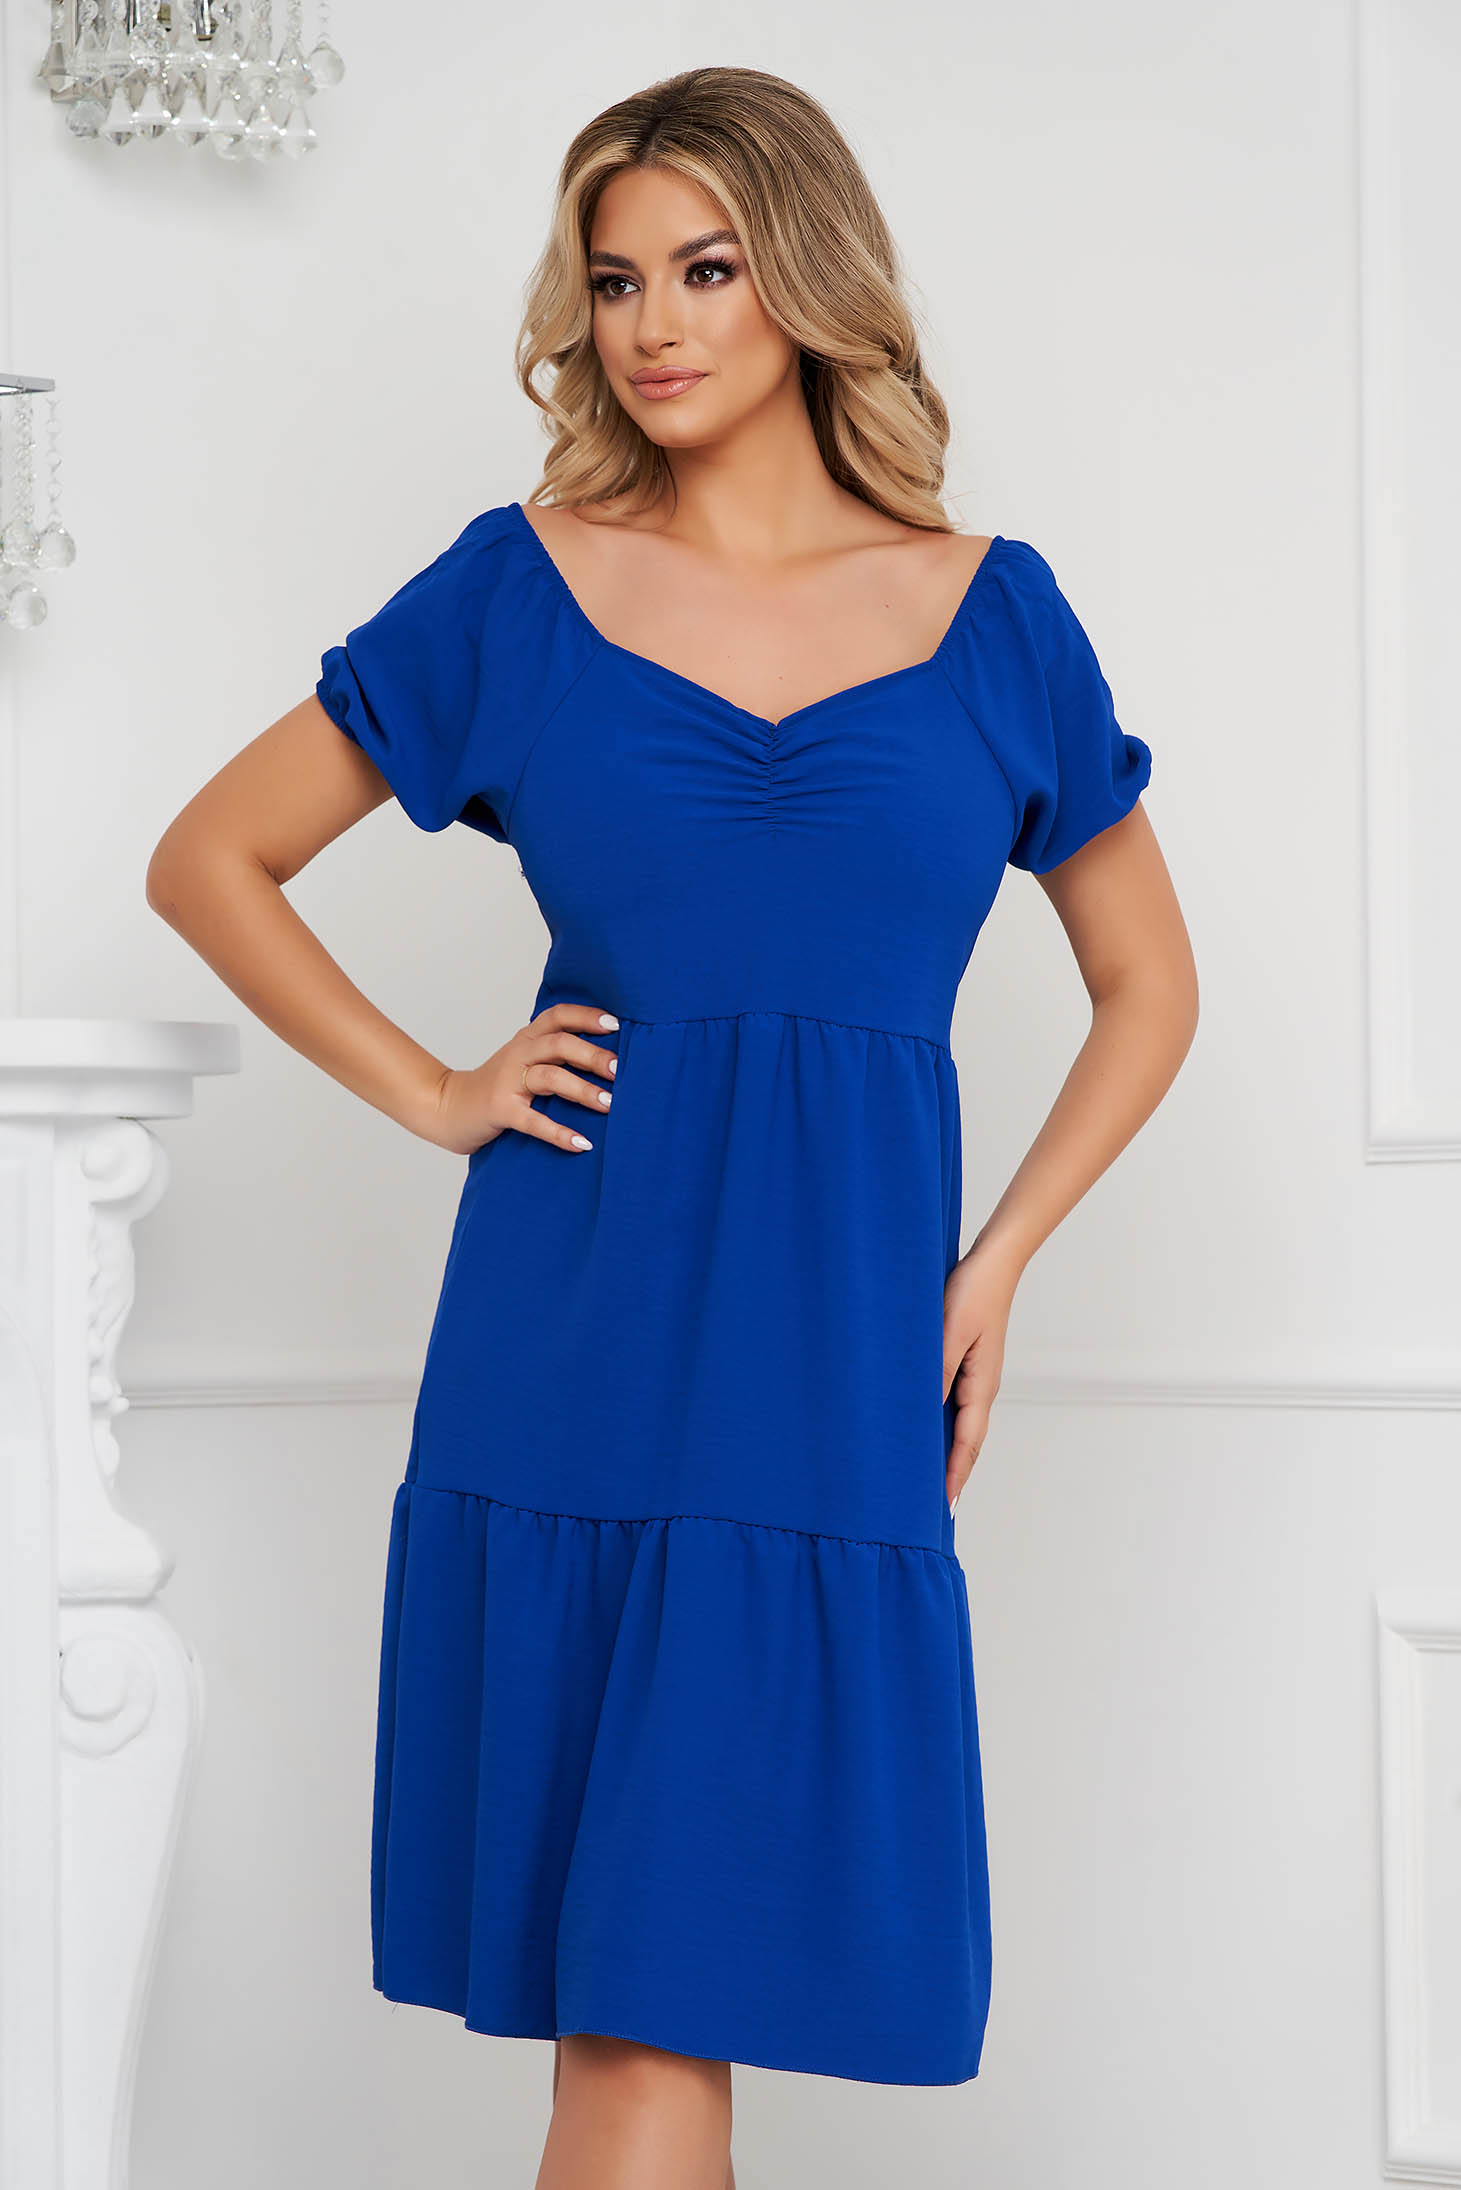 Blue dress midi loose fit on the shoulders thin fabric